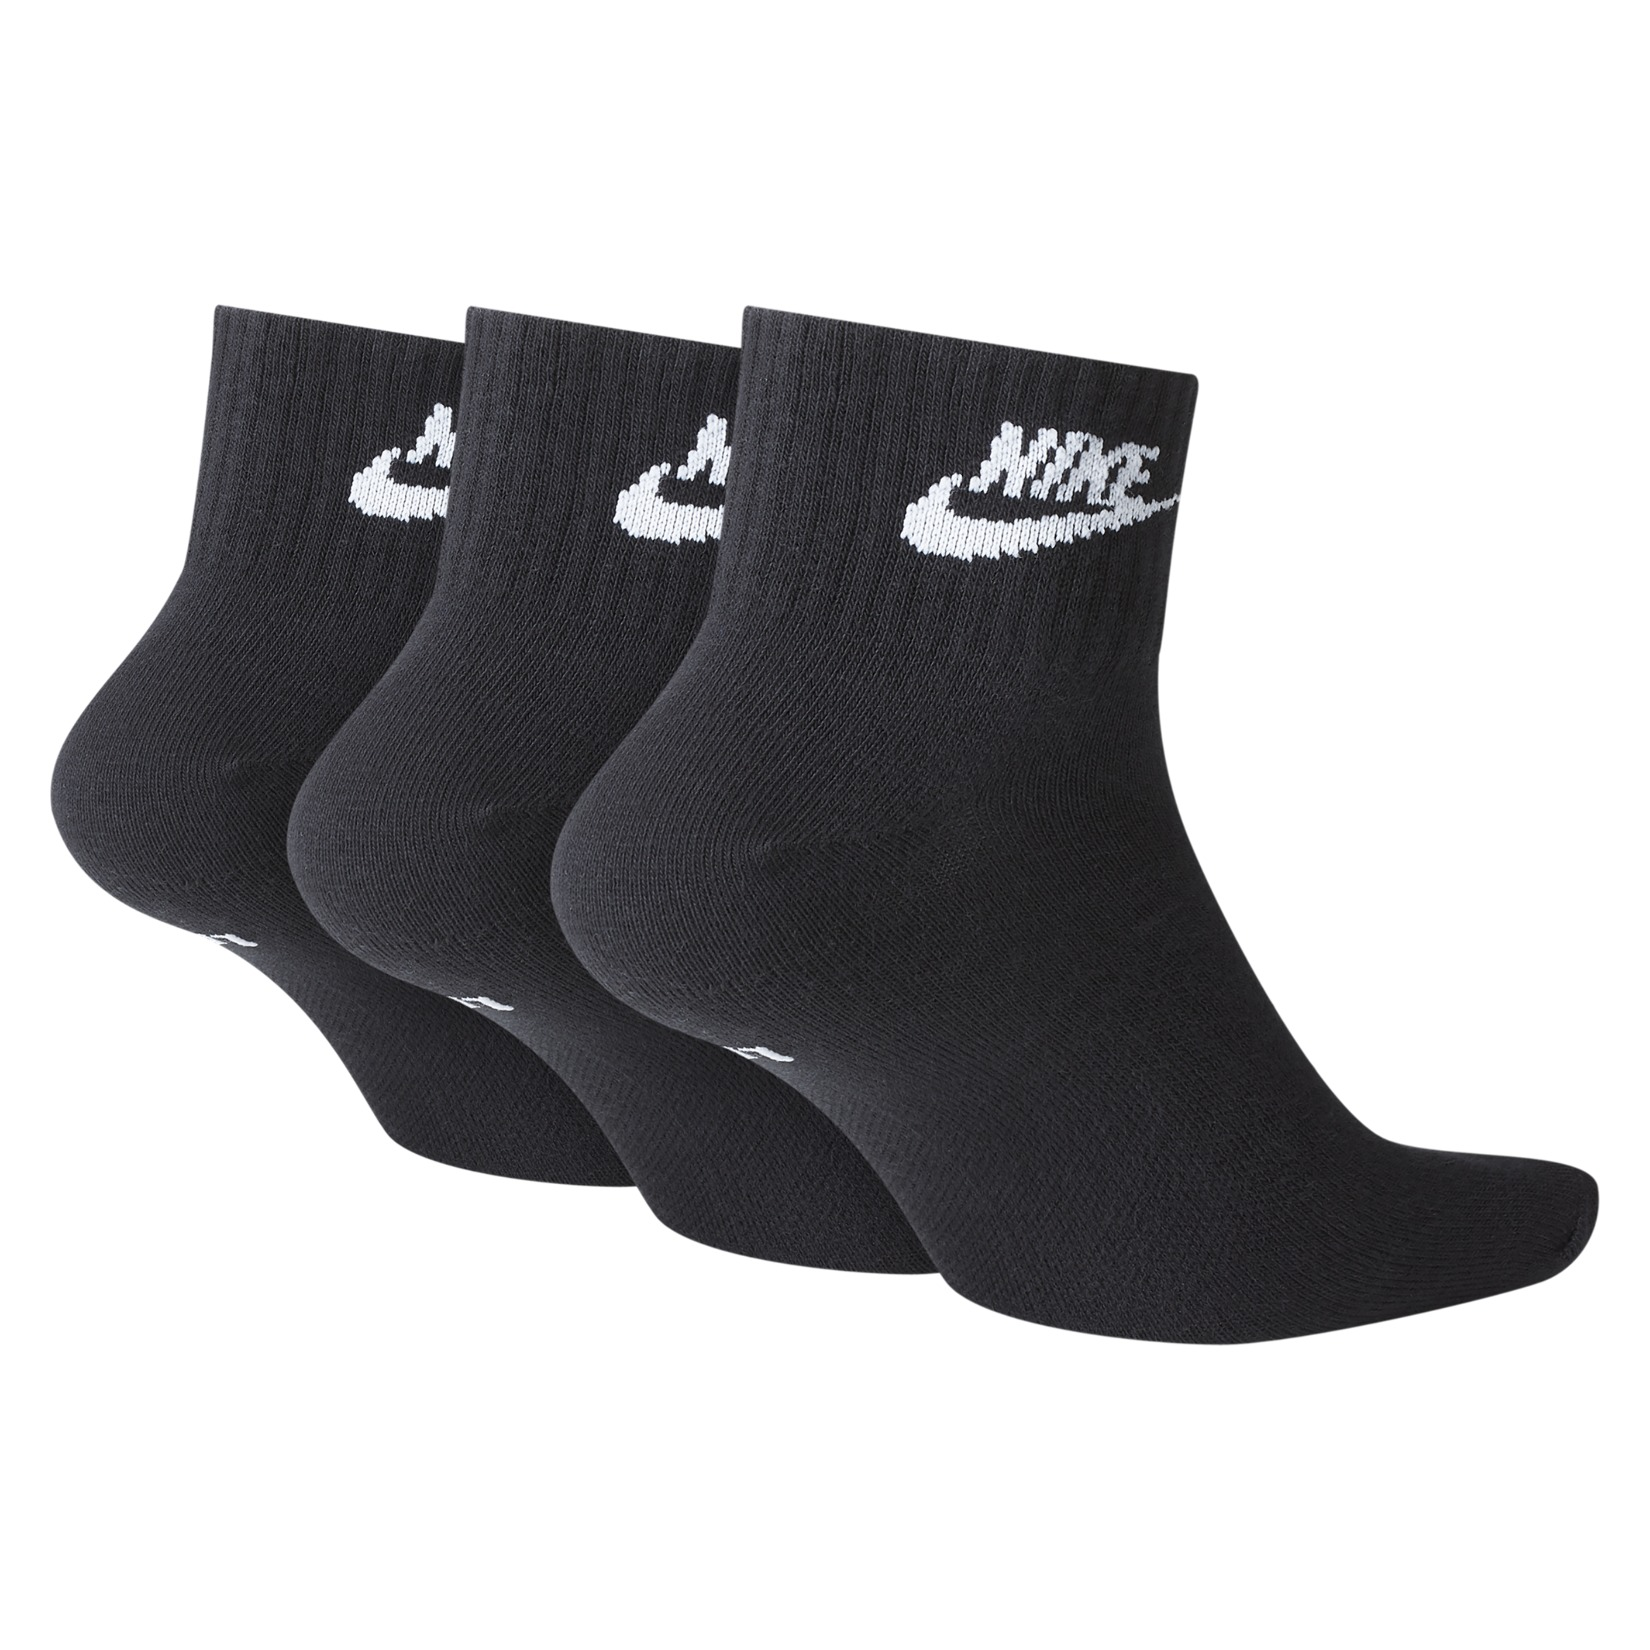 Nike Sportswear Everyday Essential Ankle Socks (3 Pair)